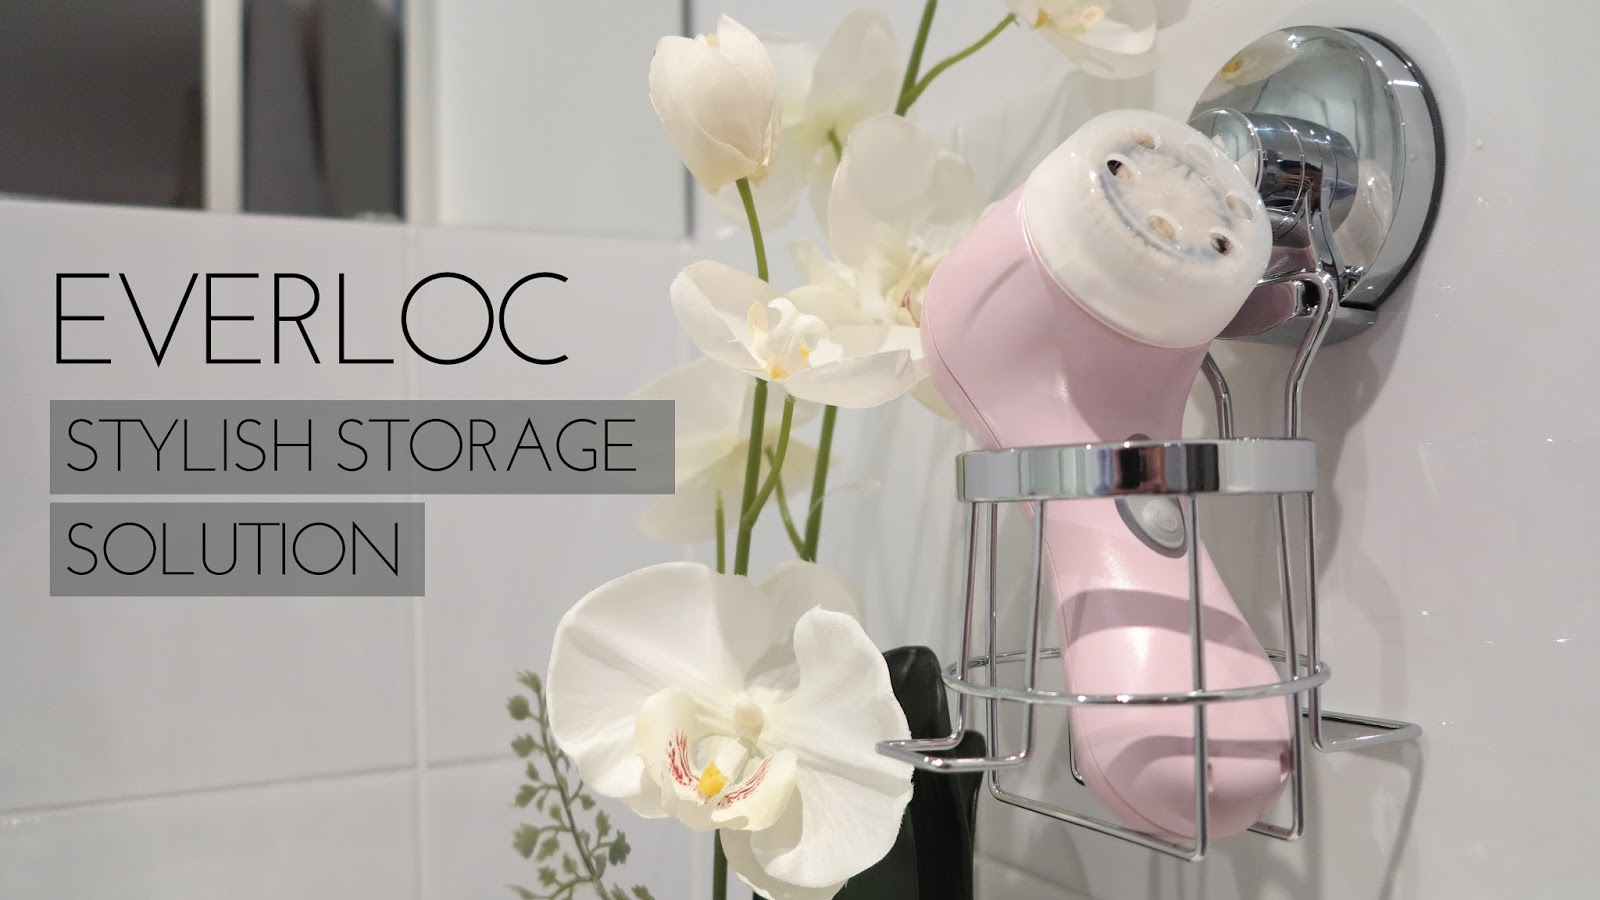 Everloc Stylish Storage Solution DIY Product